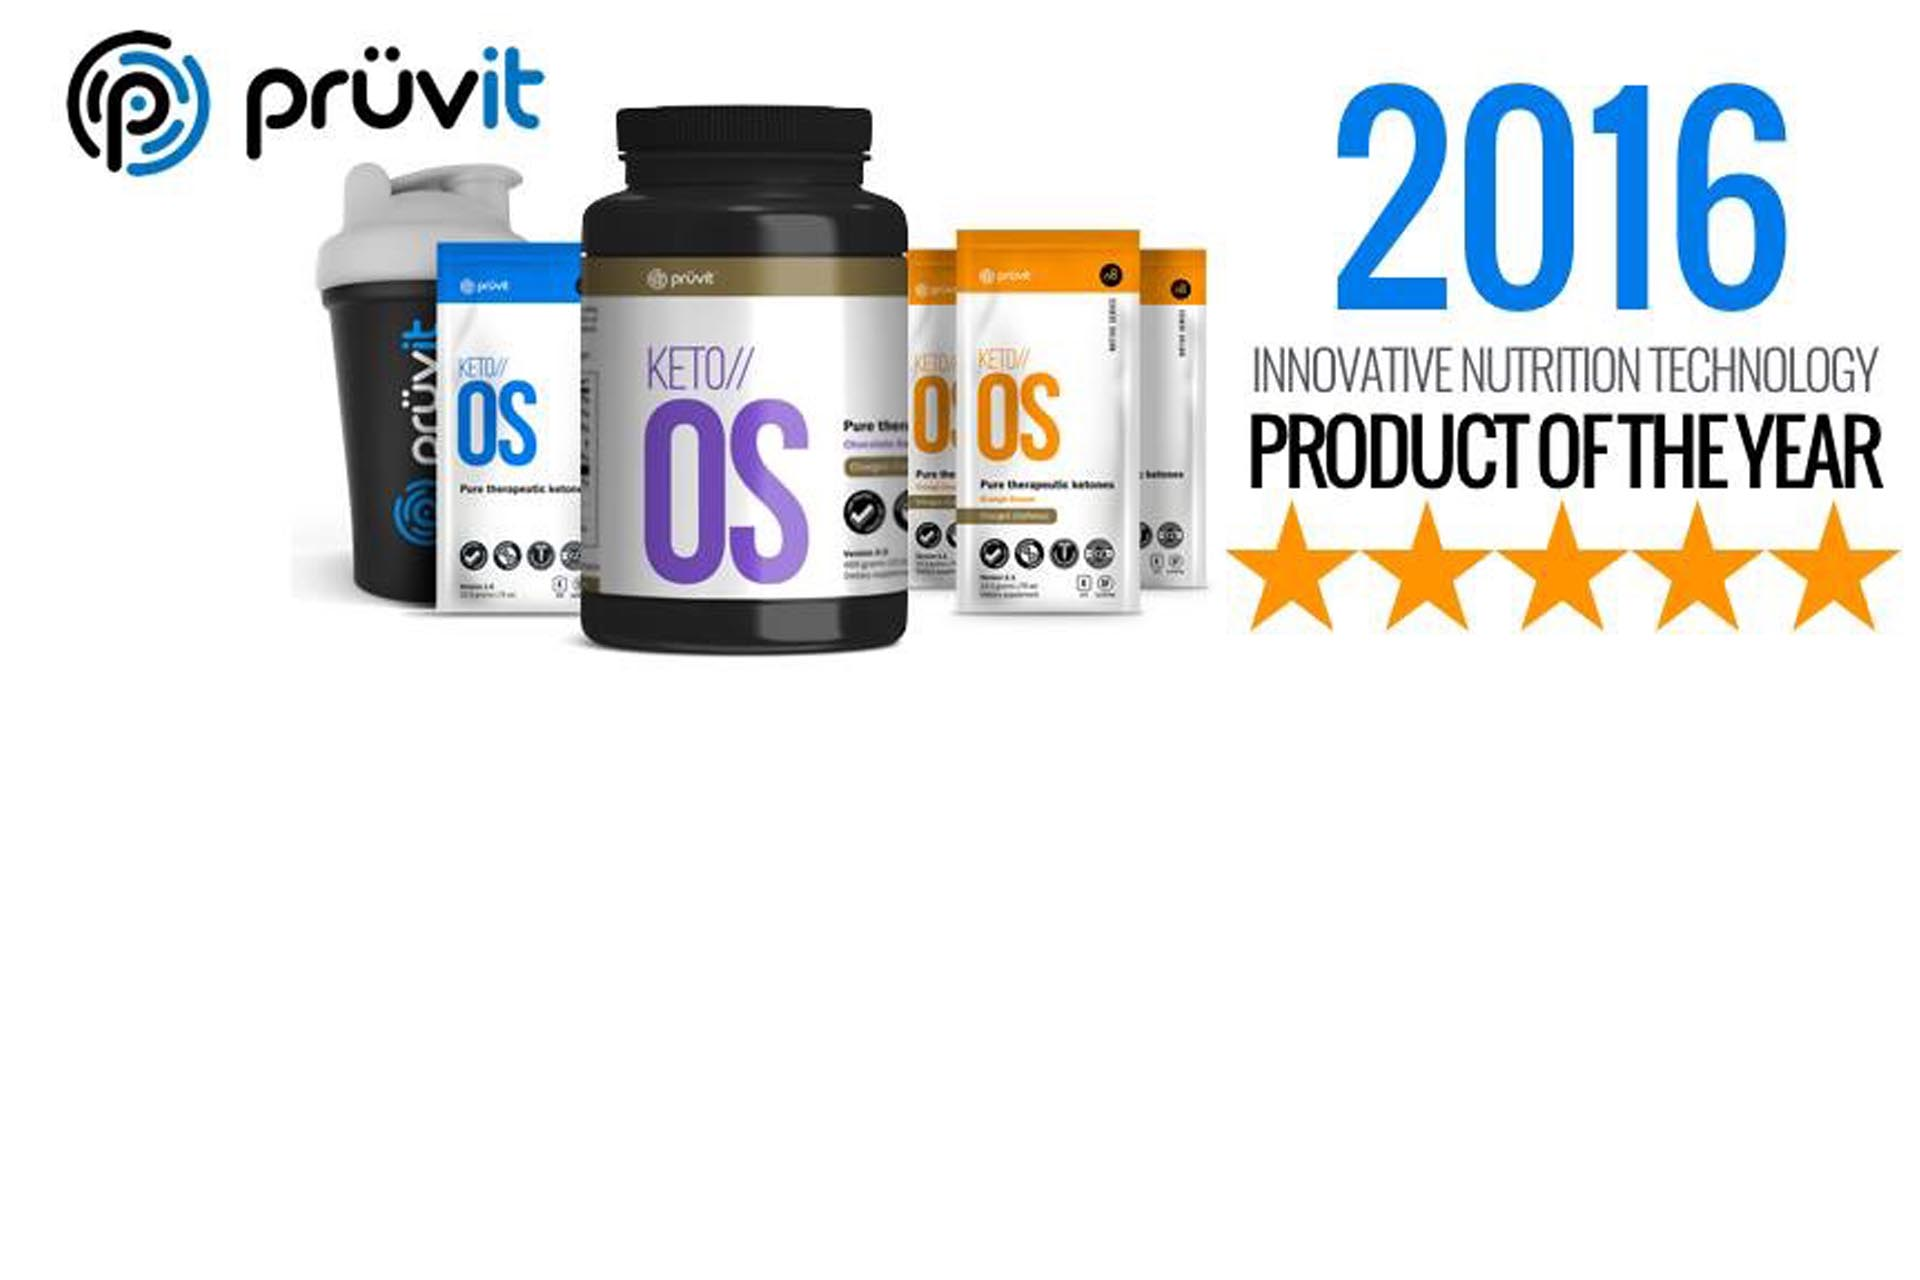 pruvit ketone nutritional technology